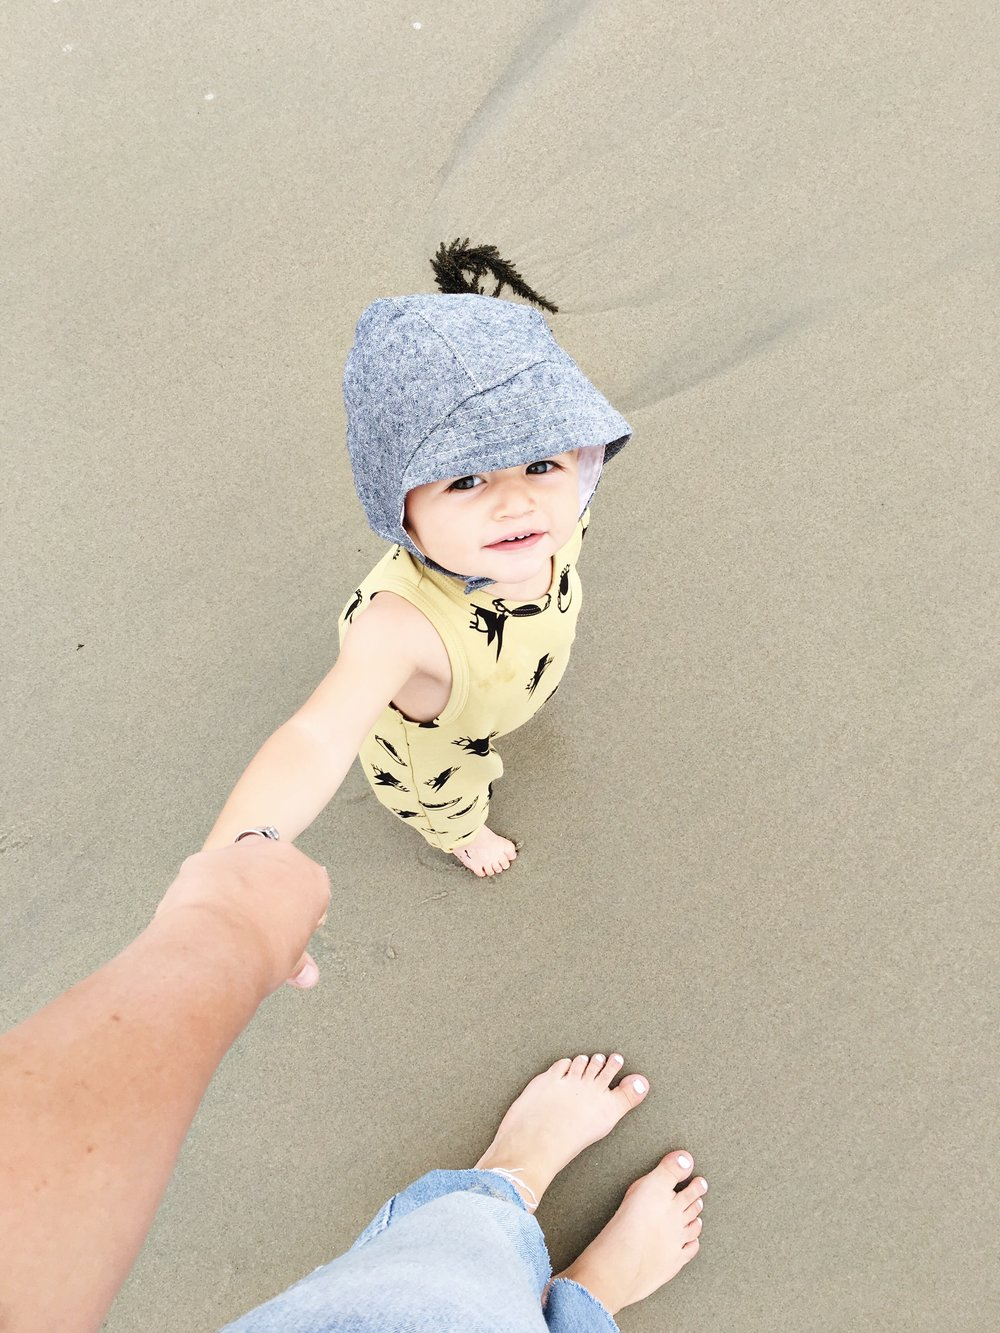 Baby boy sun bonnet for beach walks with mom, via Blue Corduroy on Etsy. Photo by Sarah Holstrom